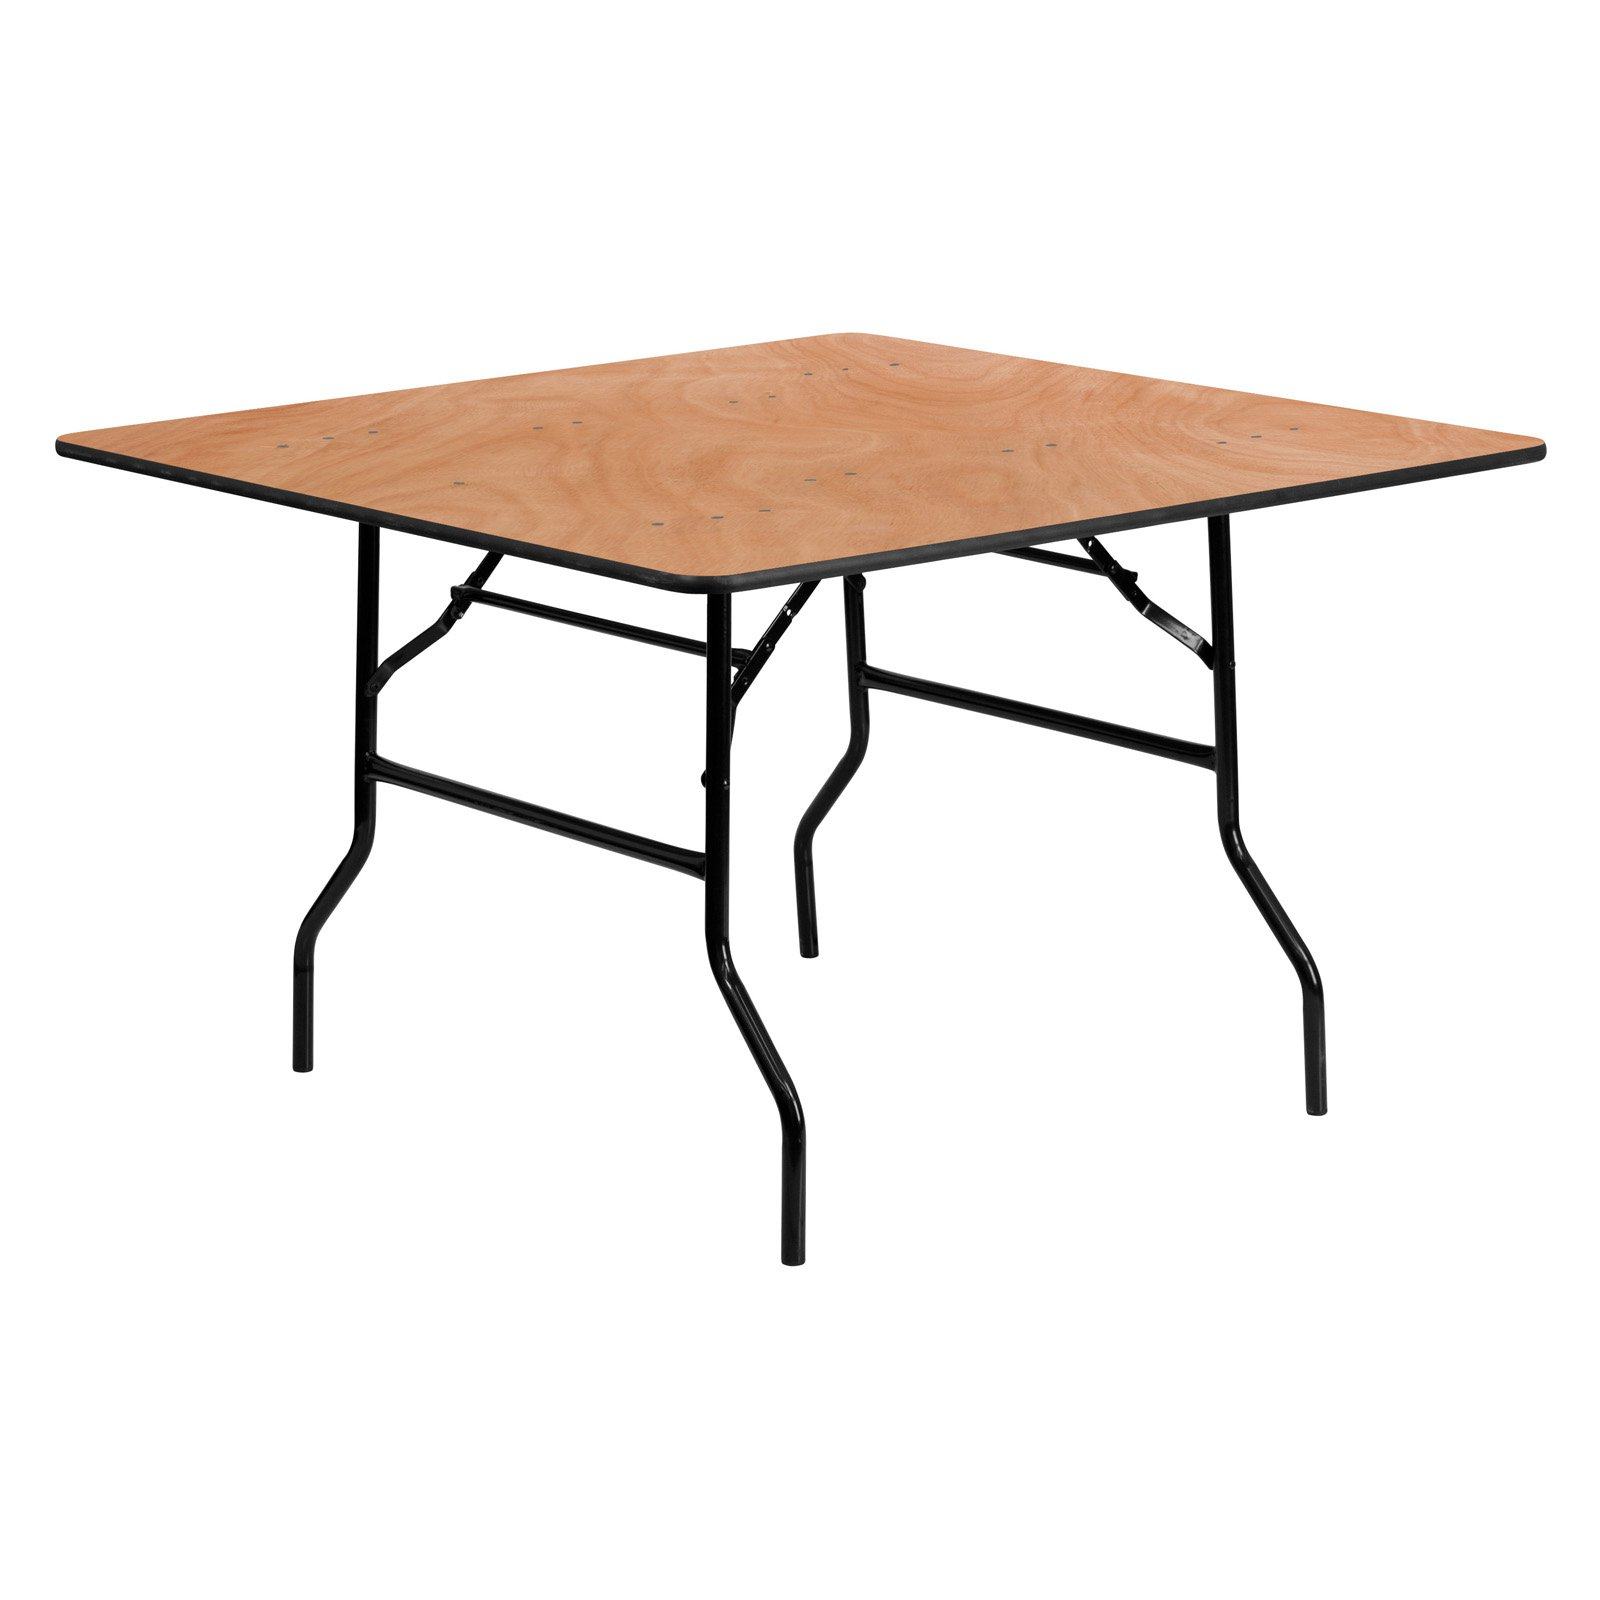 Bon Flash Furniture 48u0027u0027 Square Wood Folding Banquet Table   Walmart.com